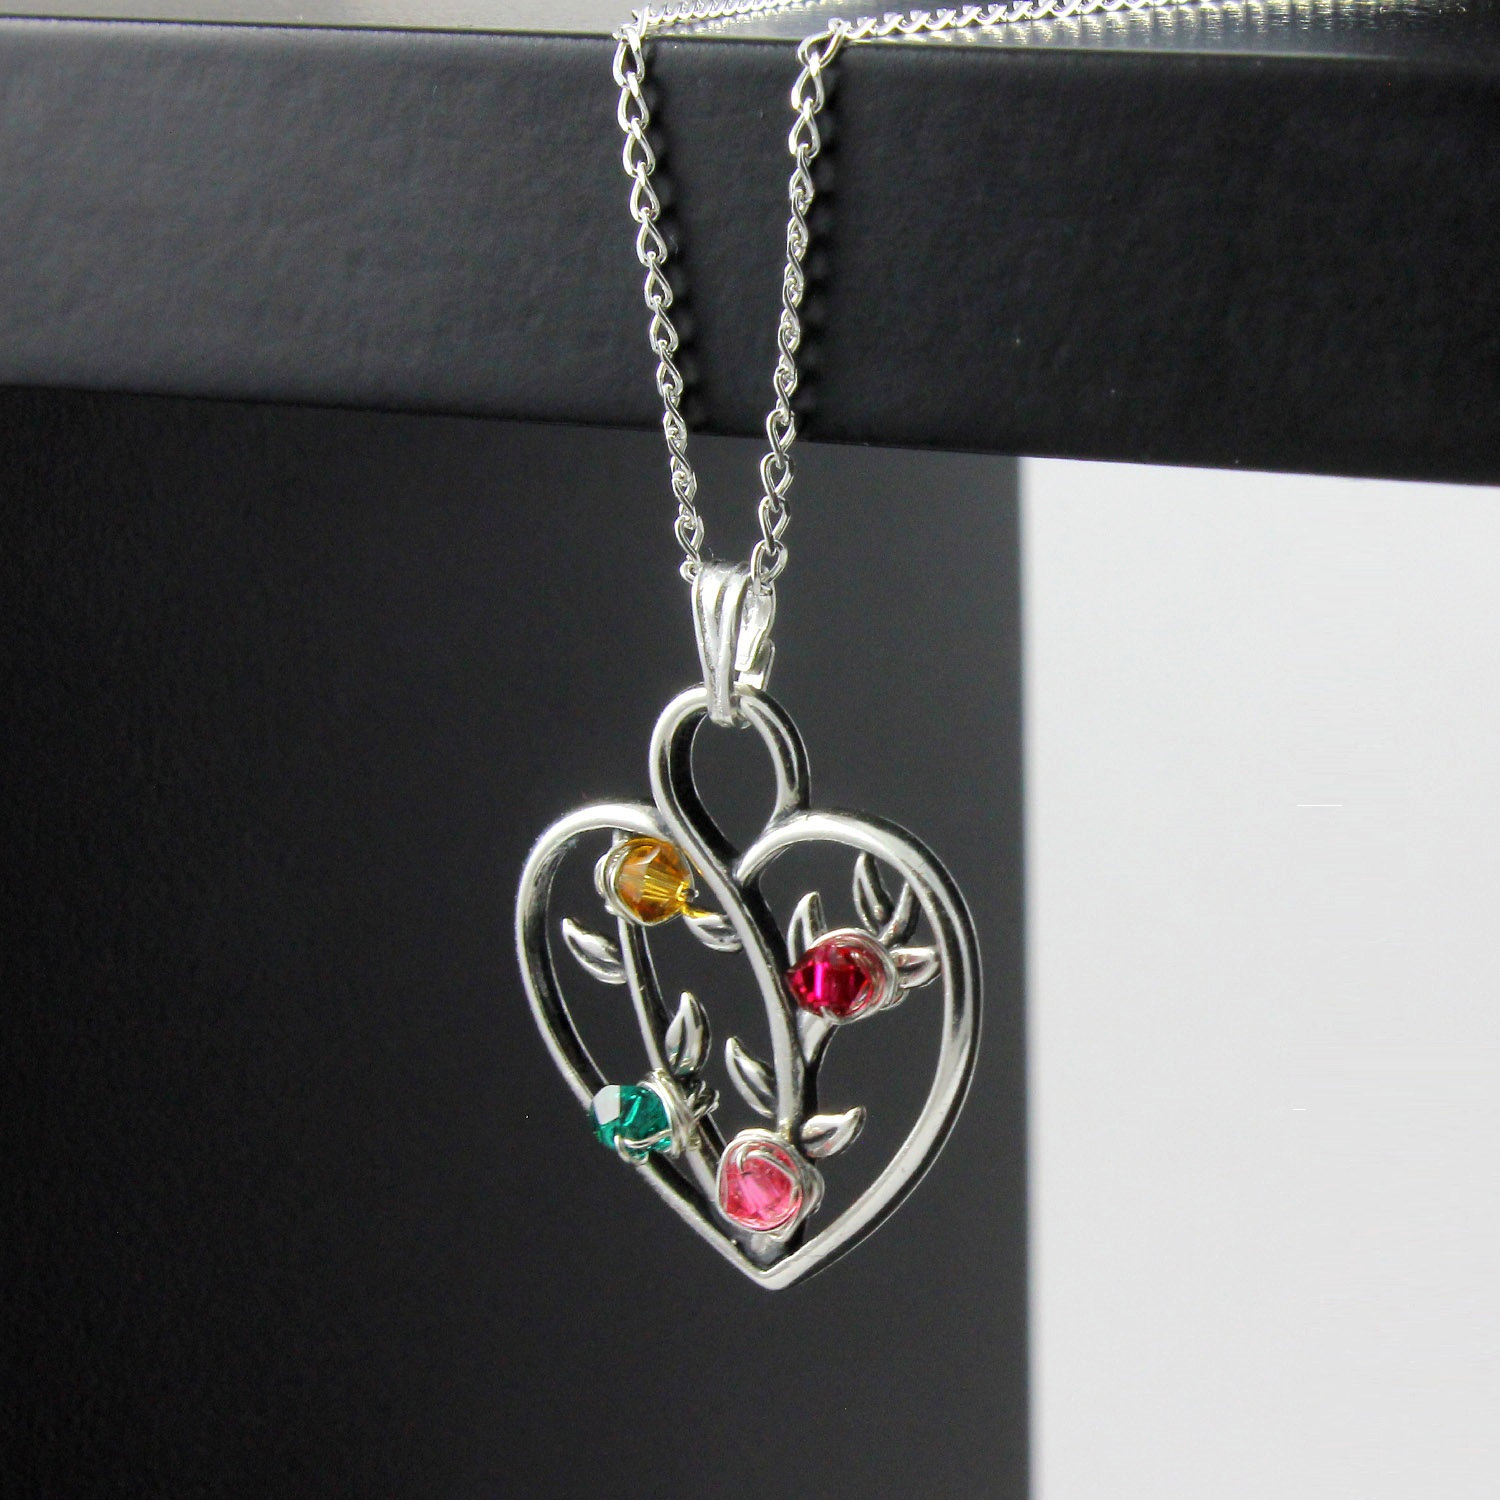 Tree Of Life Pendant – Mother's Day Gift – Heart Pendant With Custom Regarding Most Up To Date Family Tree Heart Pendant Necklaces (View 11 of 25)